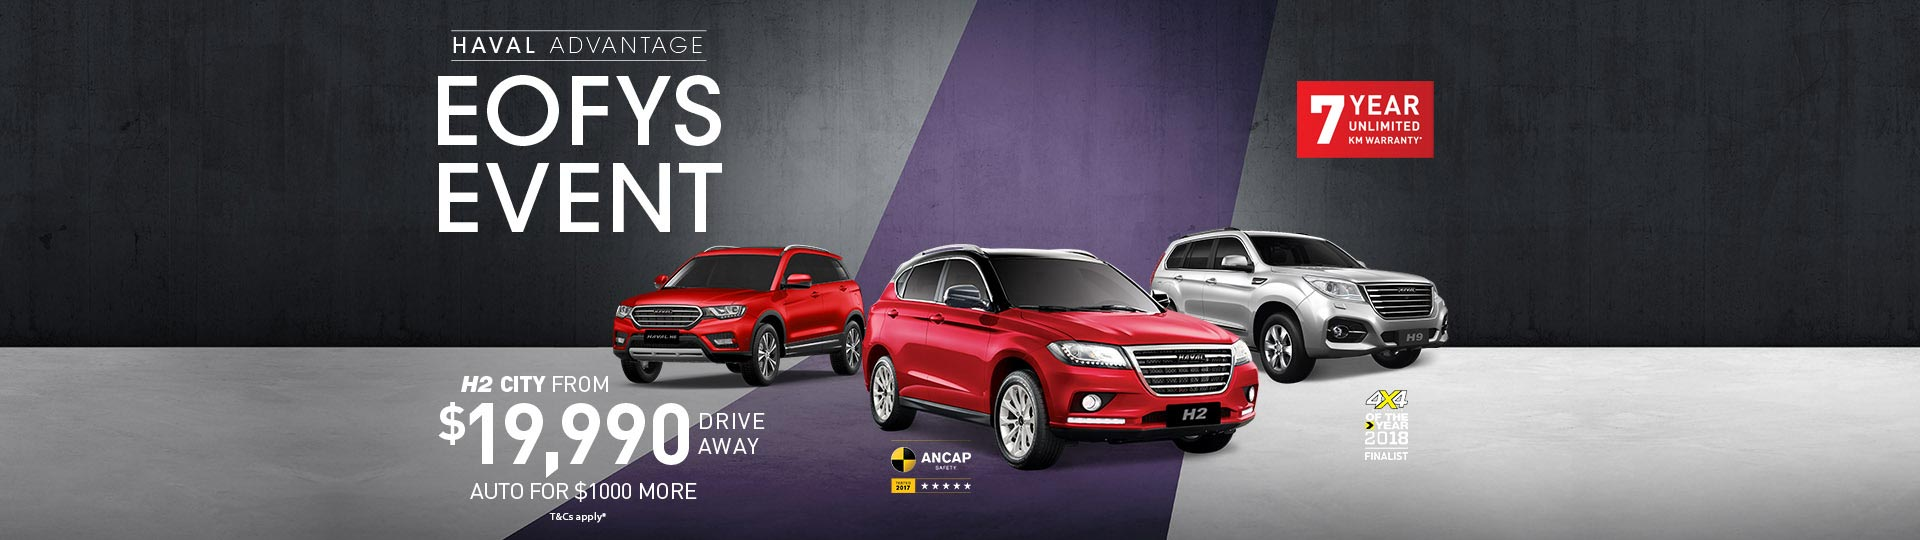 HAVAL EOFYS Event